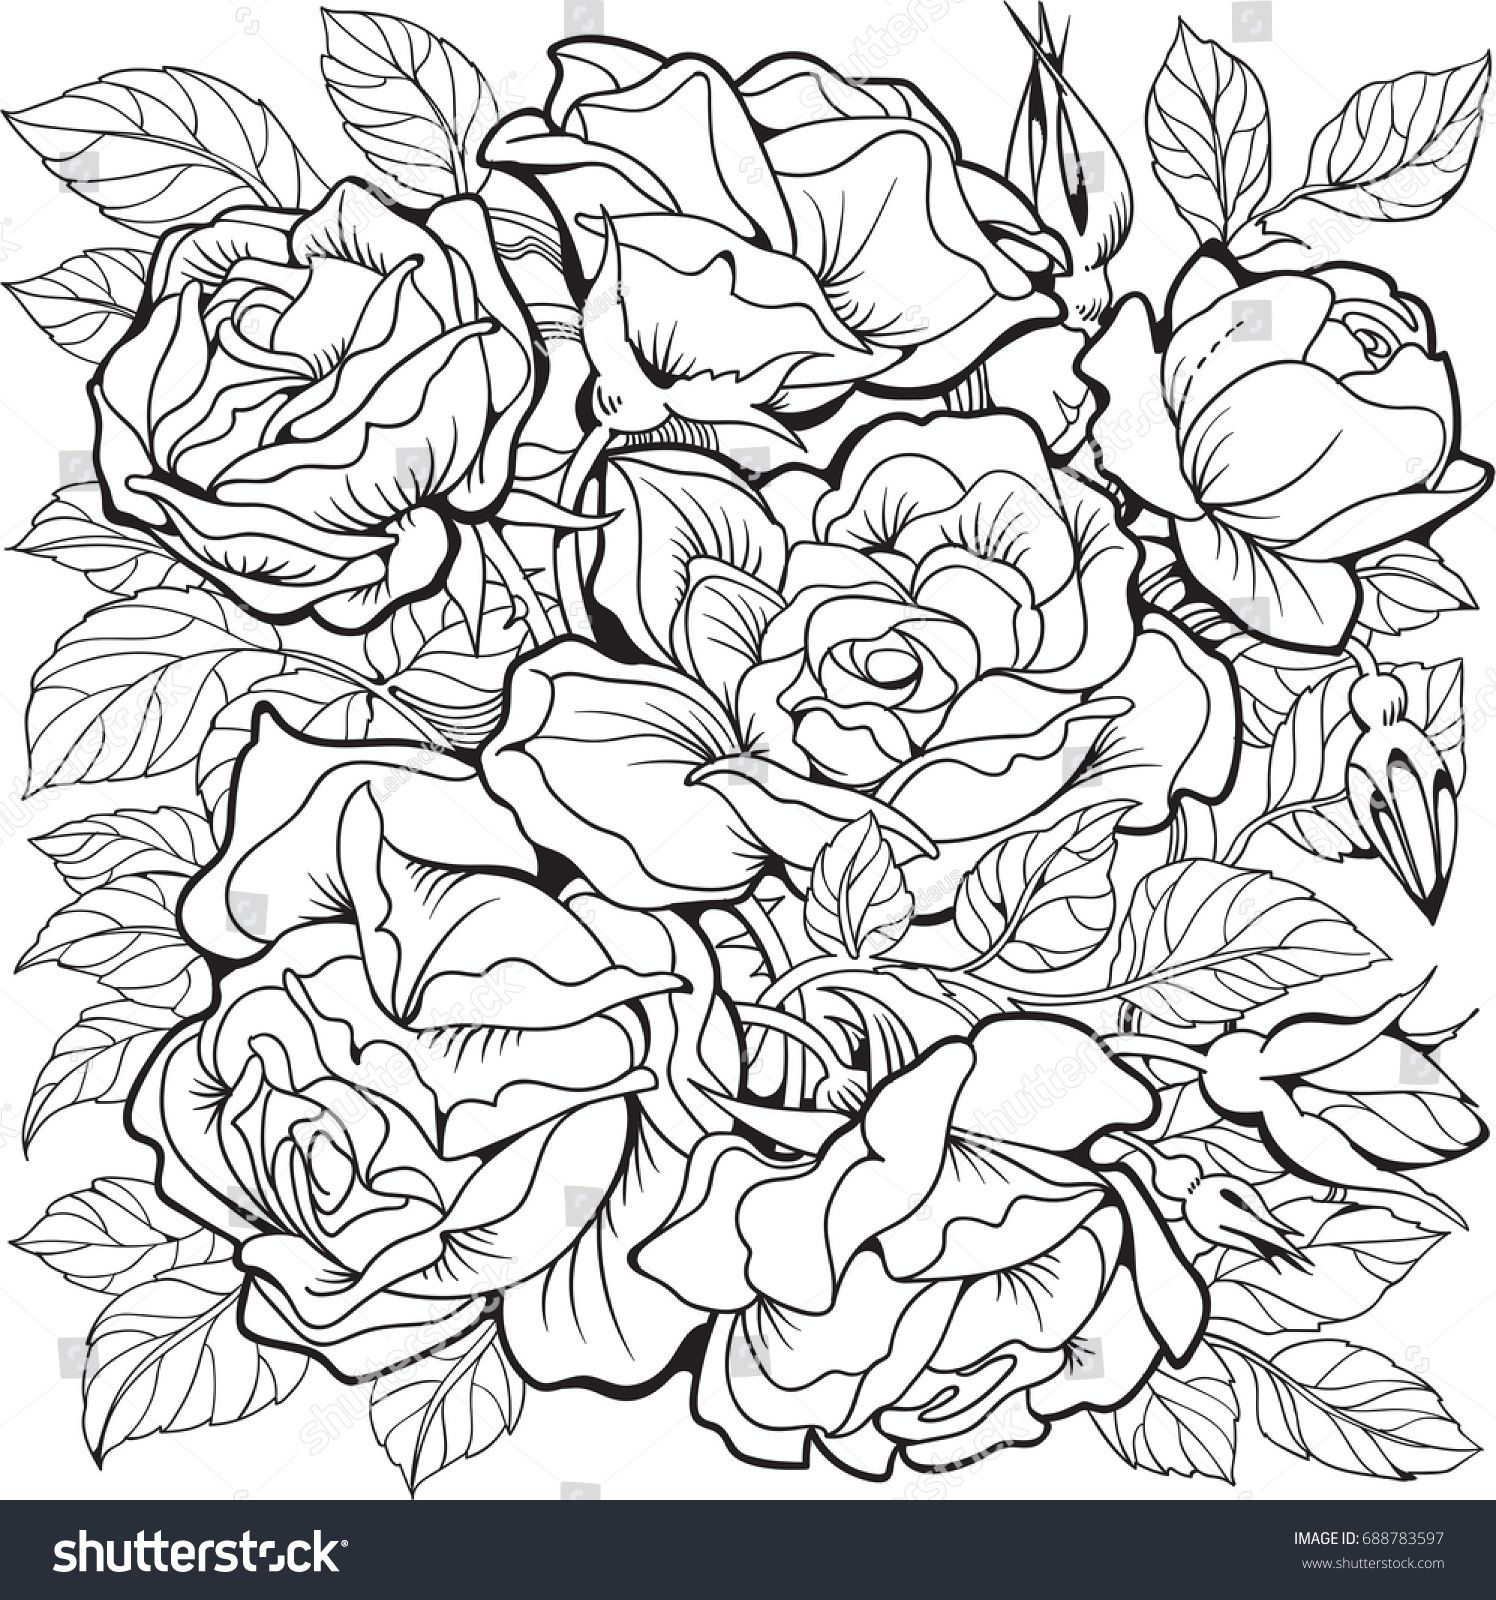 Rose flowers coloring page. Line art drawing | Color me | Pinterest ...